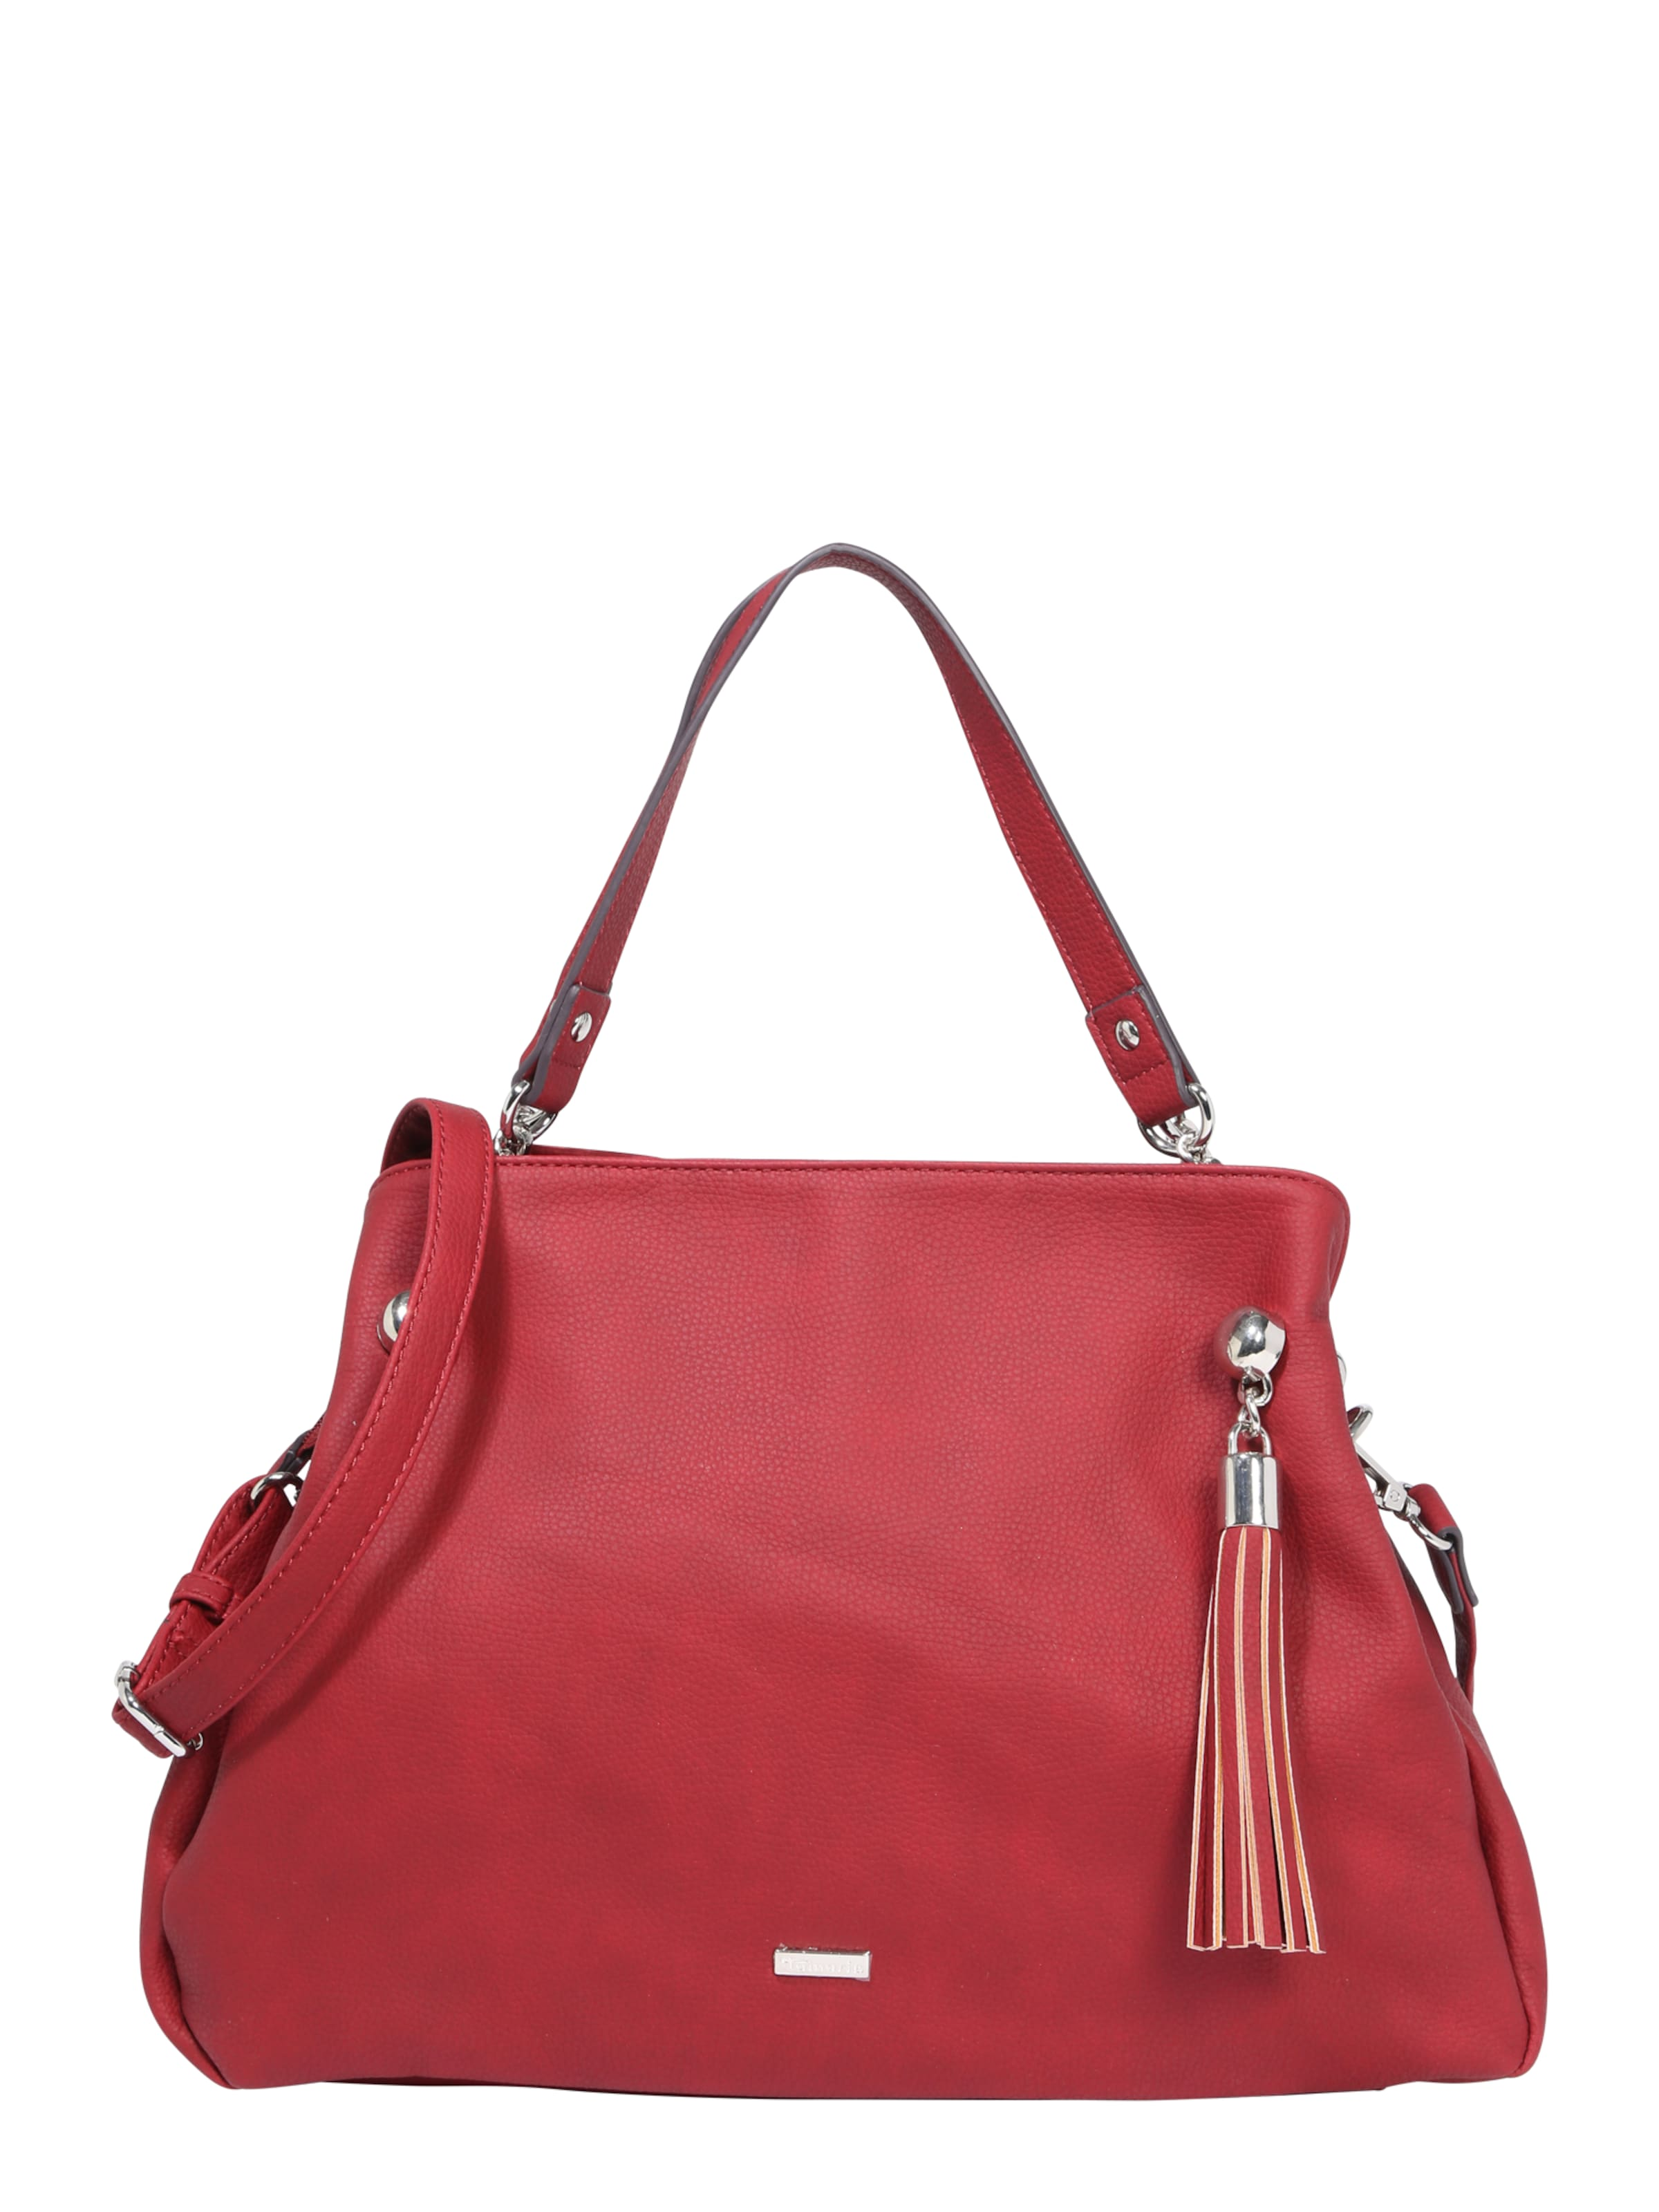 Shoulder Rouge Tamaris Bag' En Sac 'gweny Bandoulière IbWeEH2D9Y